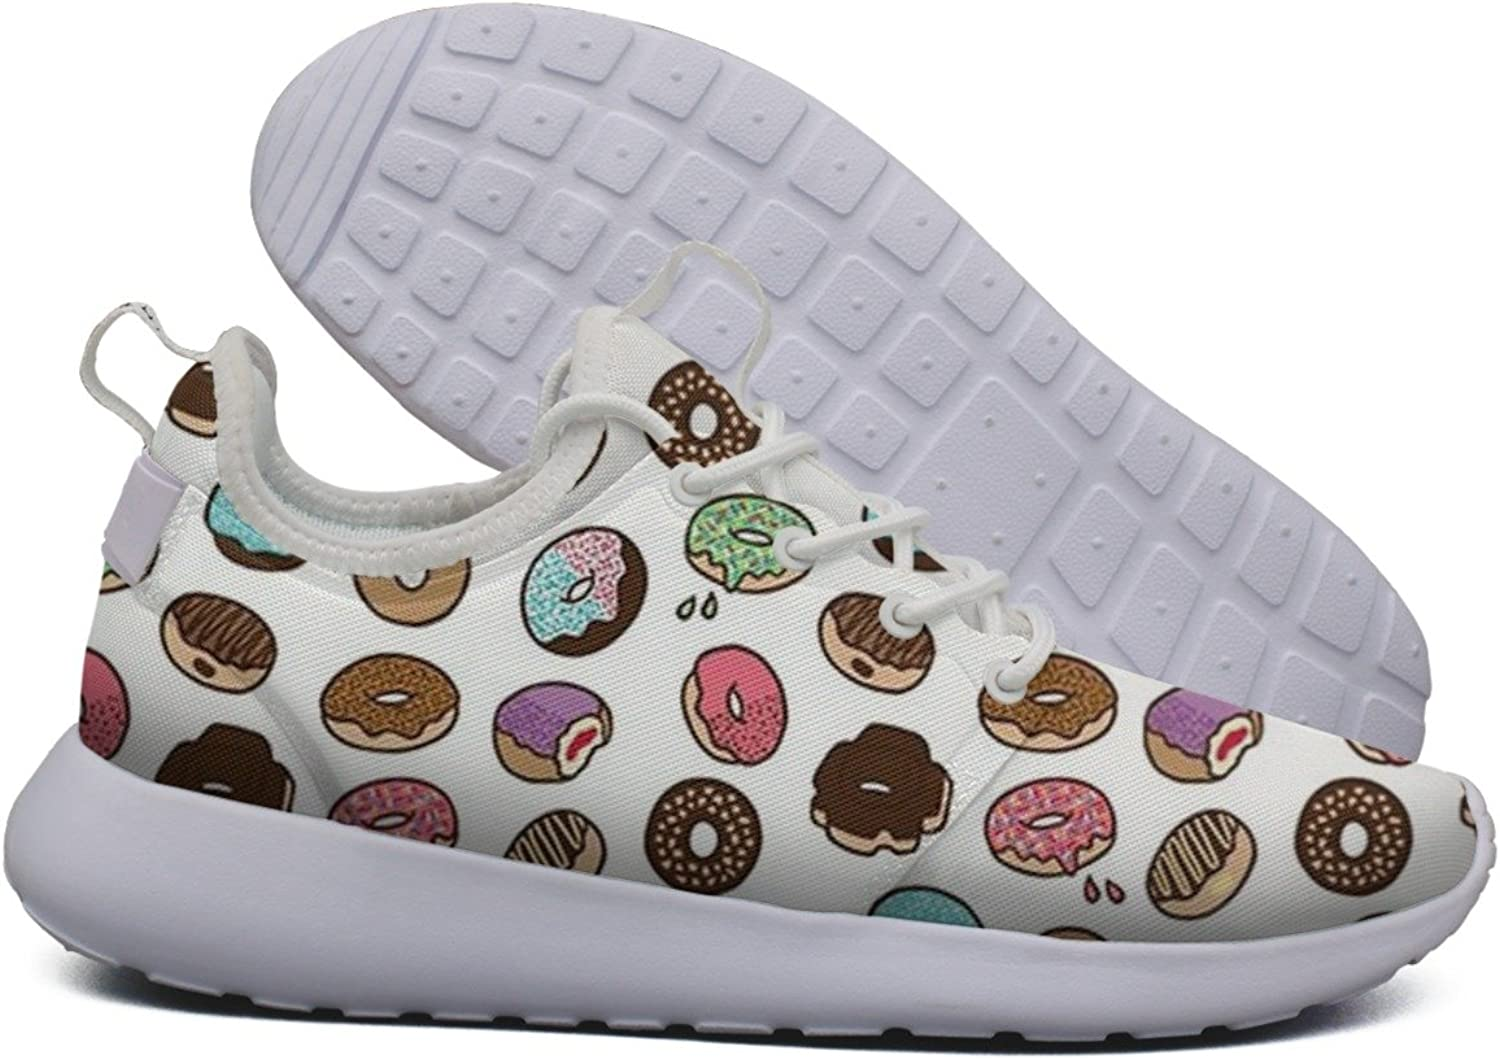 HASIDHDNAC Donut Stress Just Do Your Best Teacher Pink Jogging Work shoes Women's Lightweight Sport Running Sneaker